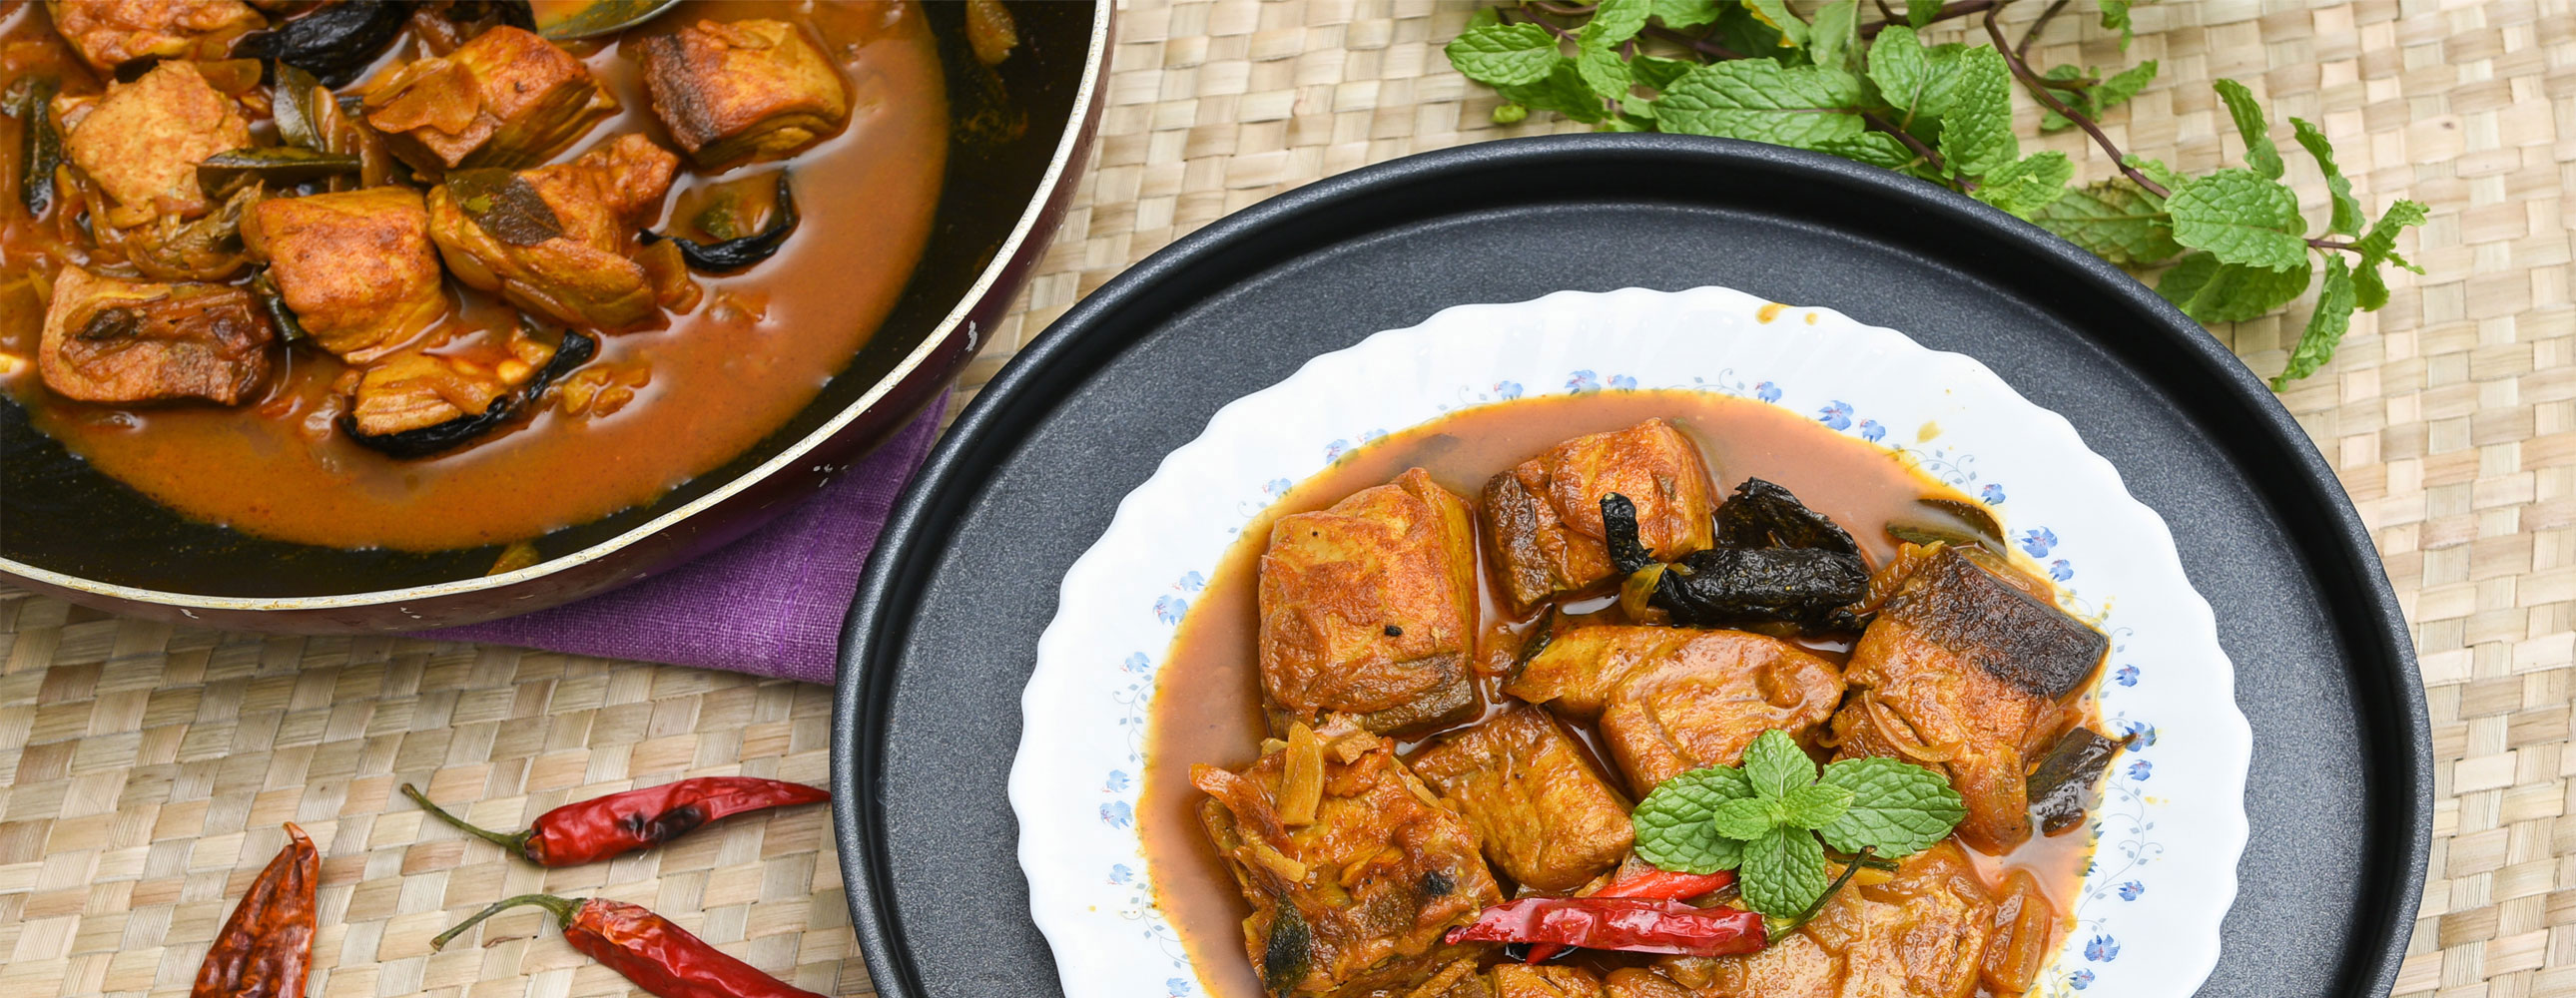 Awe inspiring feel offers assortment of cooking styles according to the decision of the visitor with uncommon accentuation on Kerala cuisines.